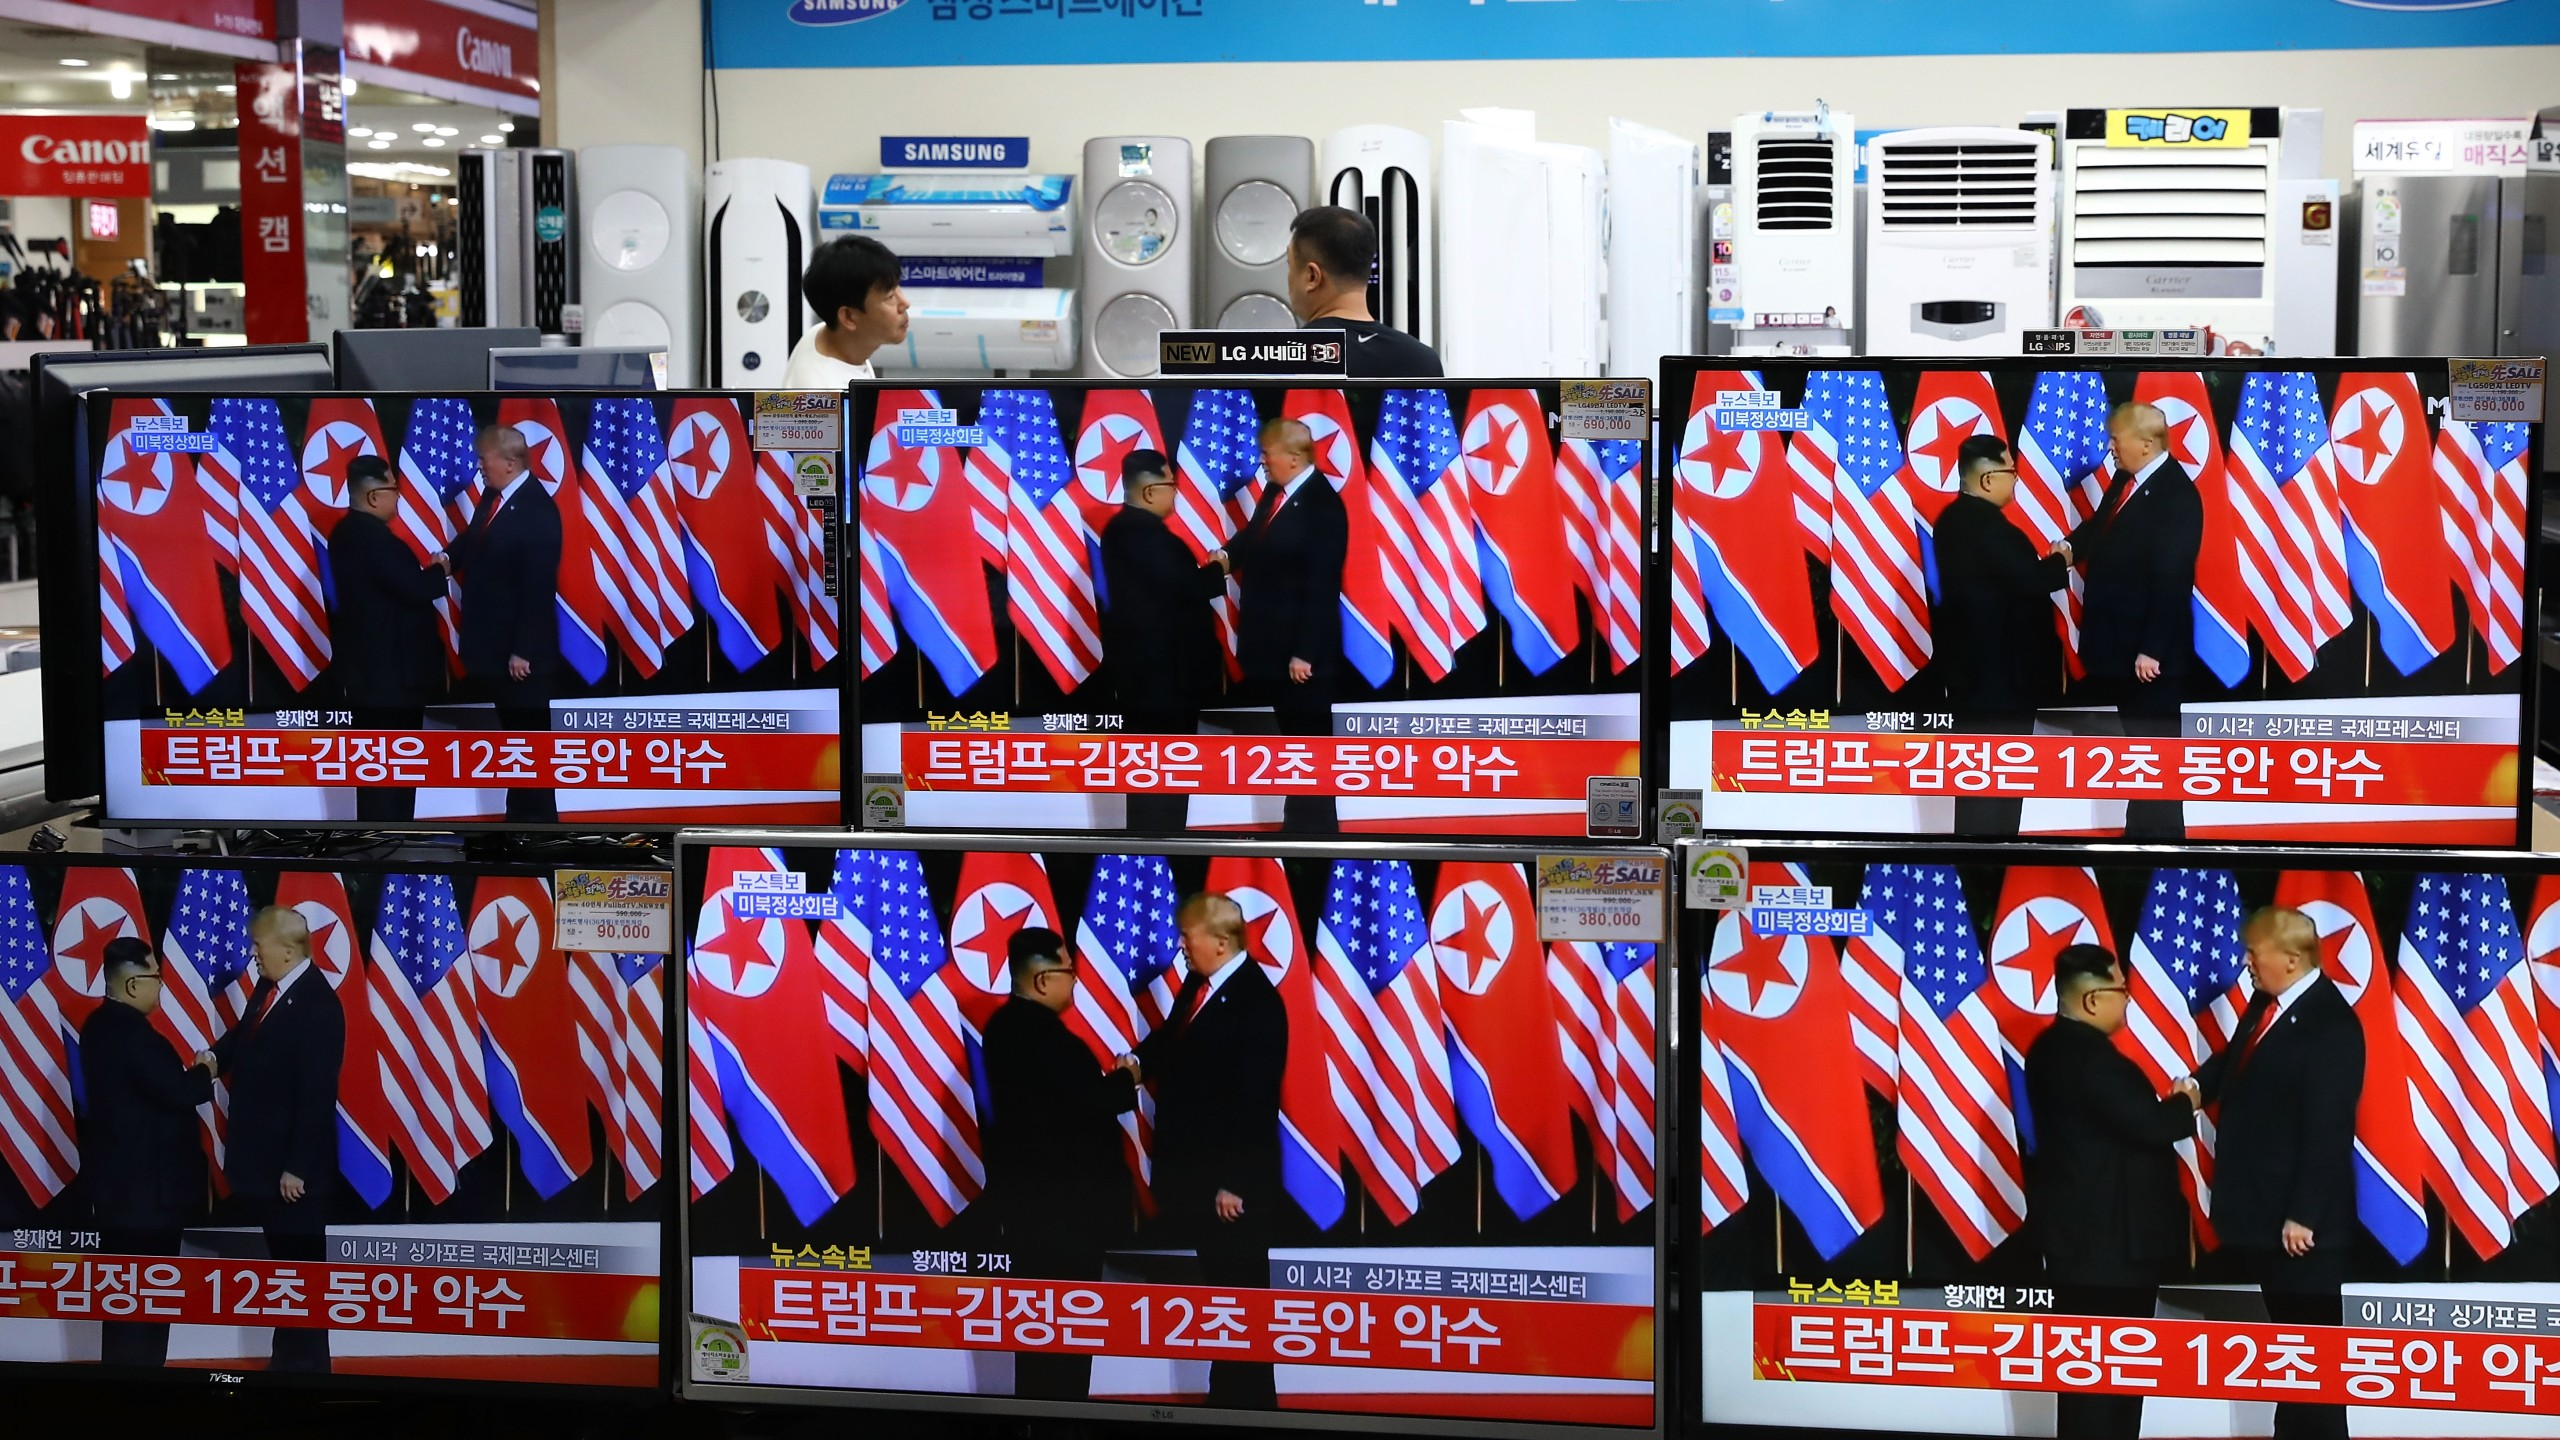 Donald Trump meeting with North Korean leader Kim Jong-un is shown on television screens at an electronics retail store in Seoul, South Korea on June 12, 2018. U.S. President Donald Trump and North Korean leader Kim Jong-un held the historic meeting on Tuesday morning in Singapore, carrying hopes of ending decades of hostility and the threat of North Korea's nuclear program. (Credit: Chung Sung-Jun/Getty Images)